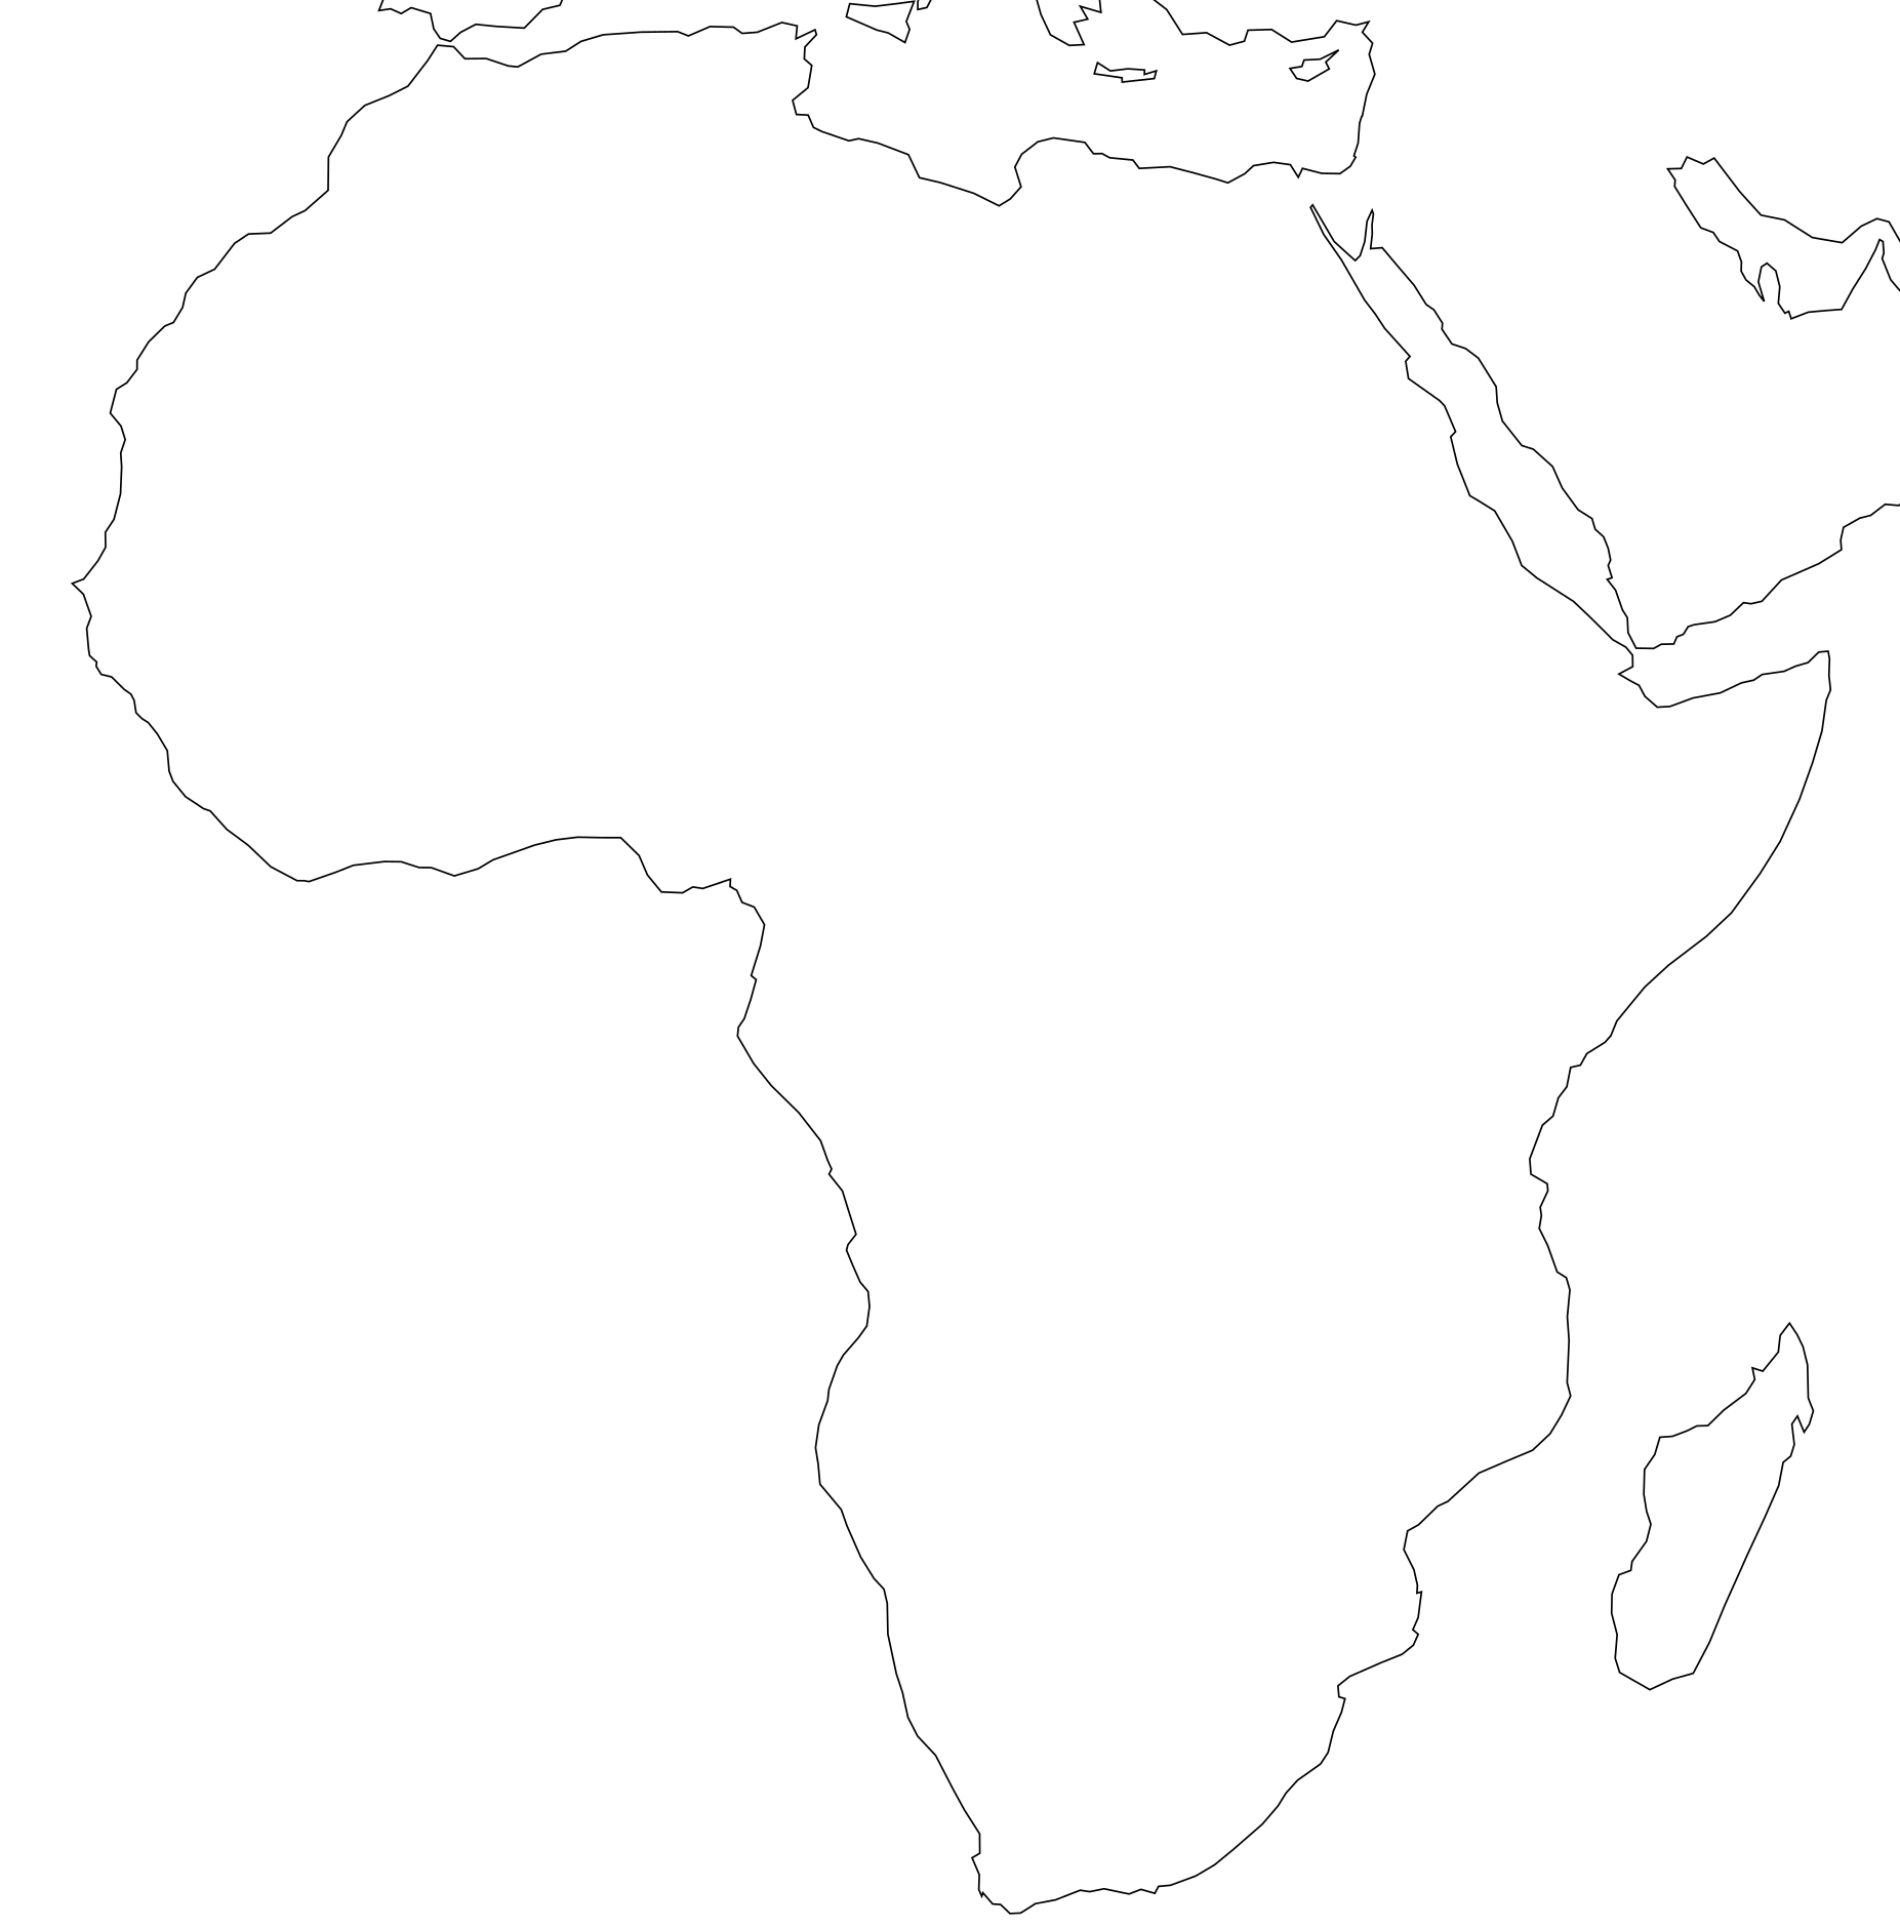 Blank Outline Map Of Africa